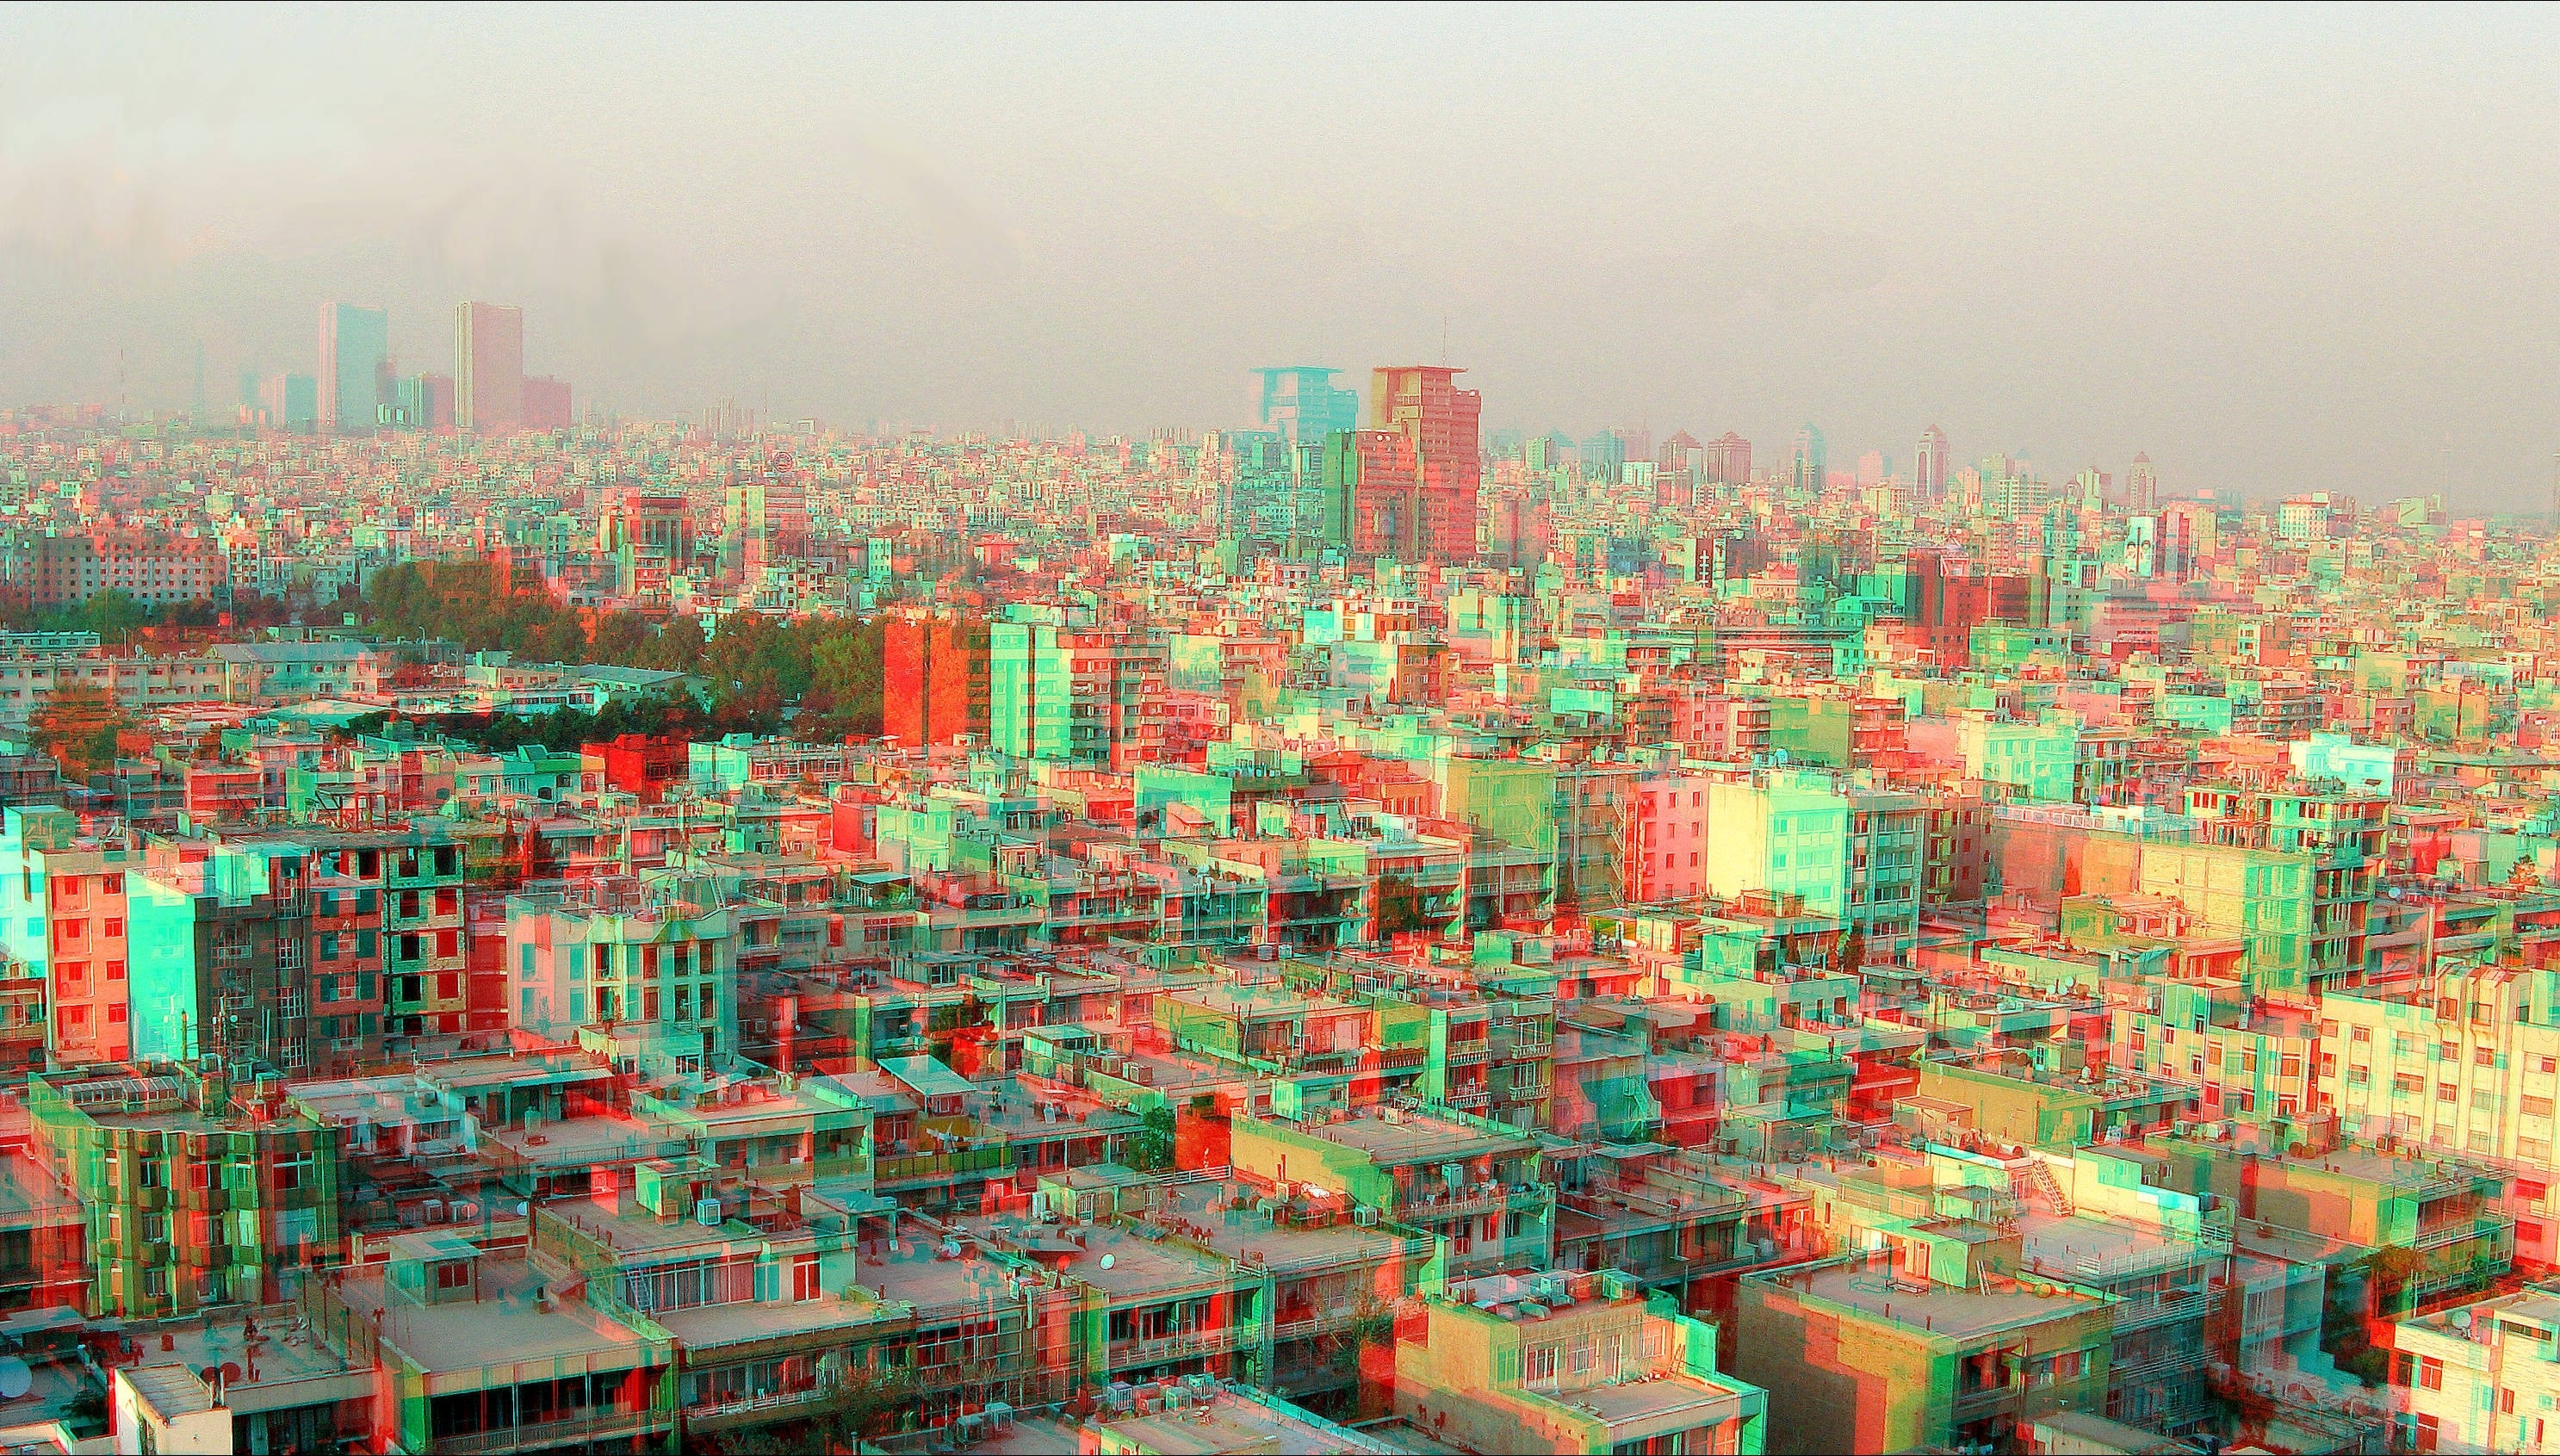 Download Wallpapers Download 2973x1691 anaglyph 3d Wallpaper 2973x1691